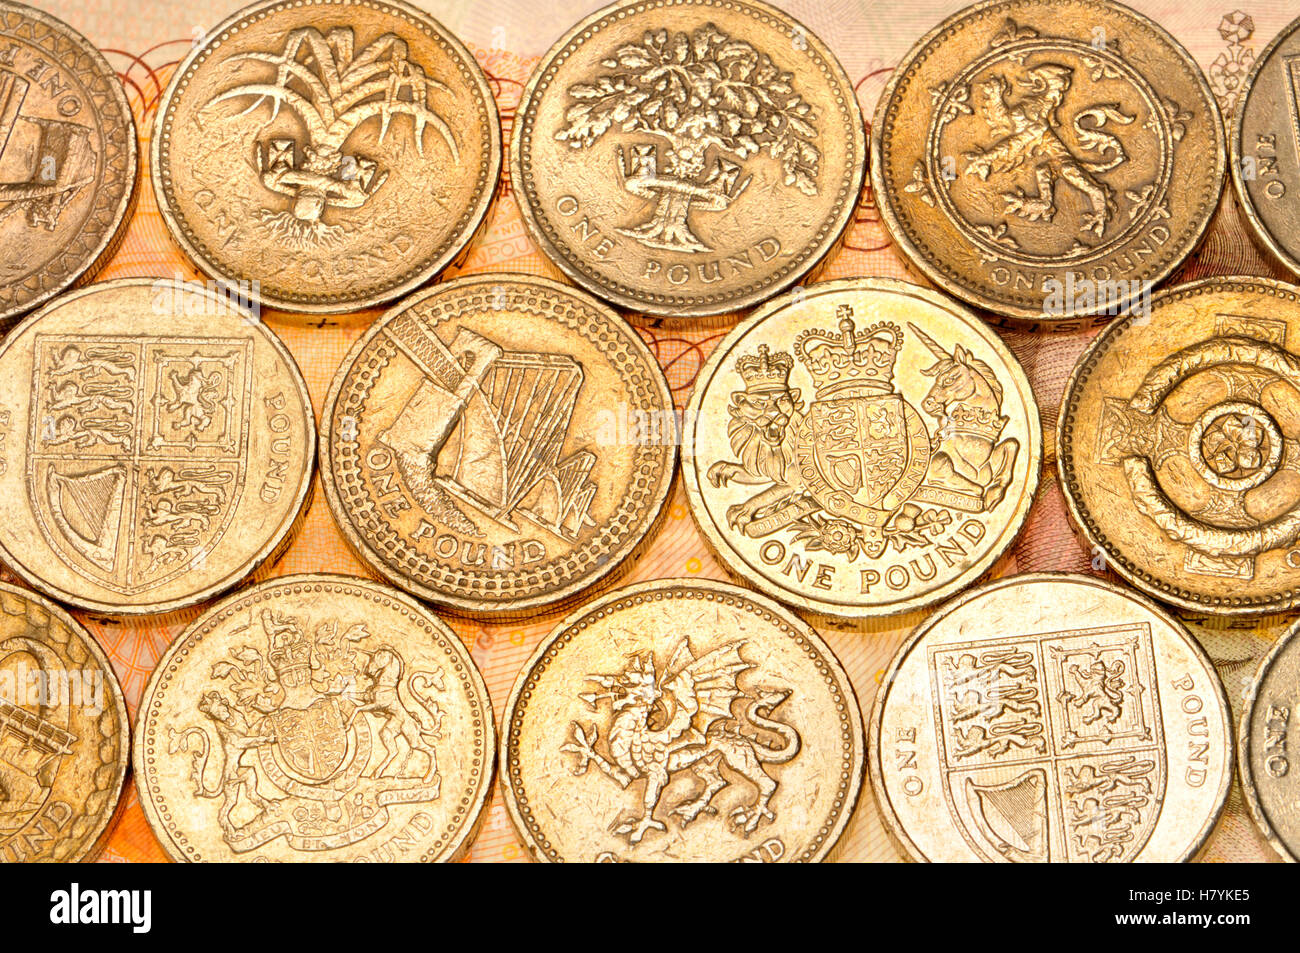 British pound coins with different designs on the reverse - Stock Image